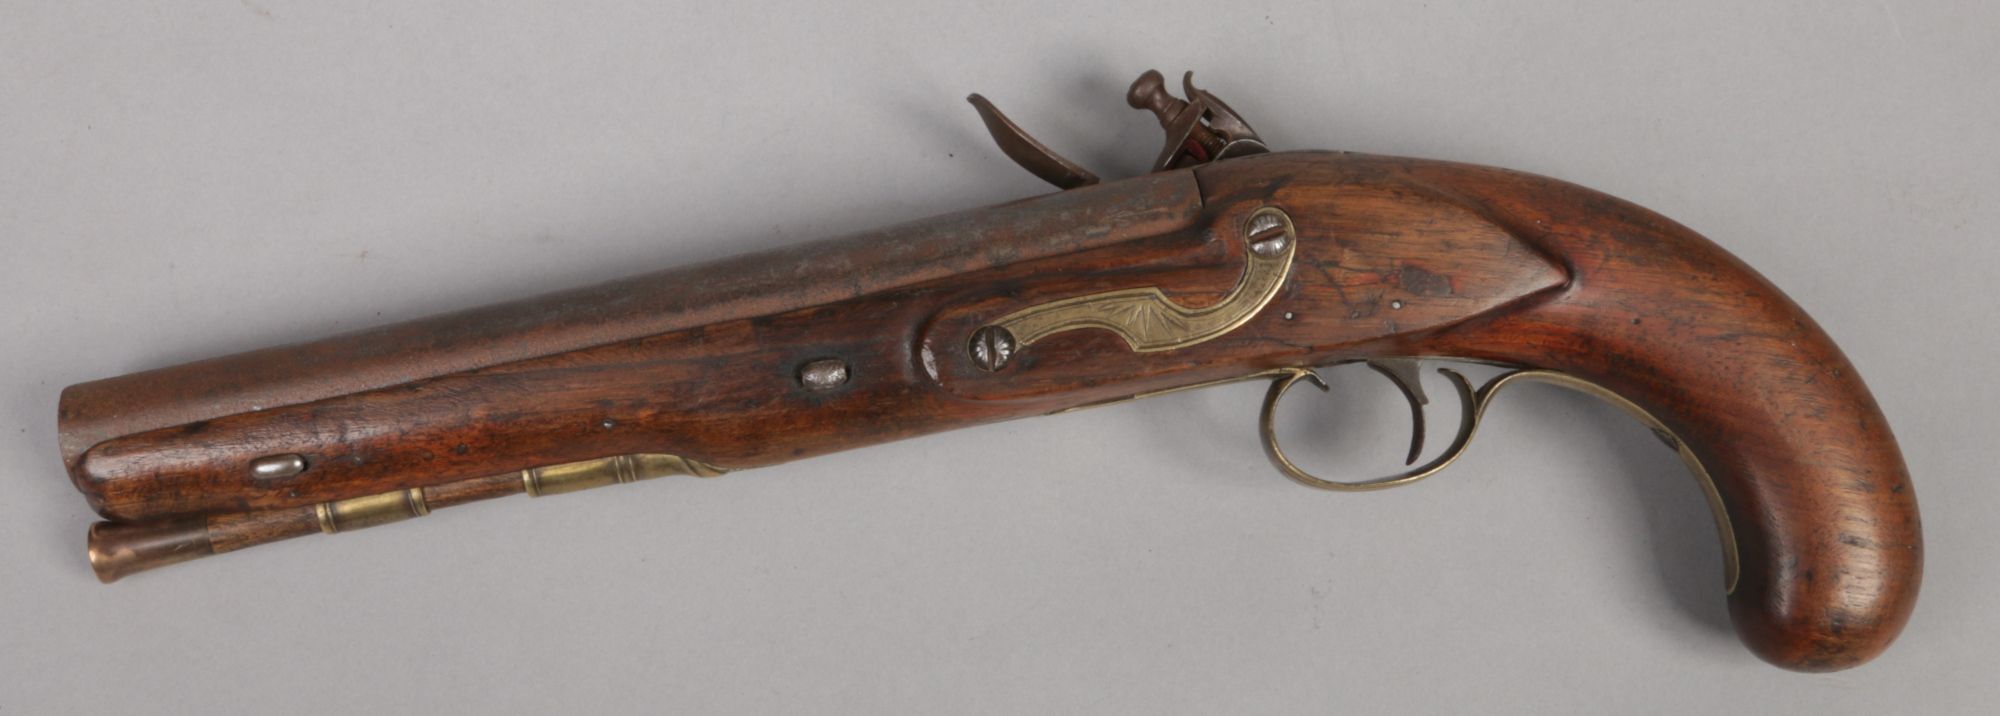 Lot 270 - An 18th century flintlock coaching pistol with safety by J. Harding .700. Inscribed, with walnut